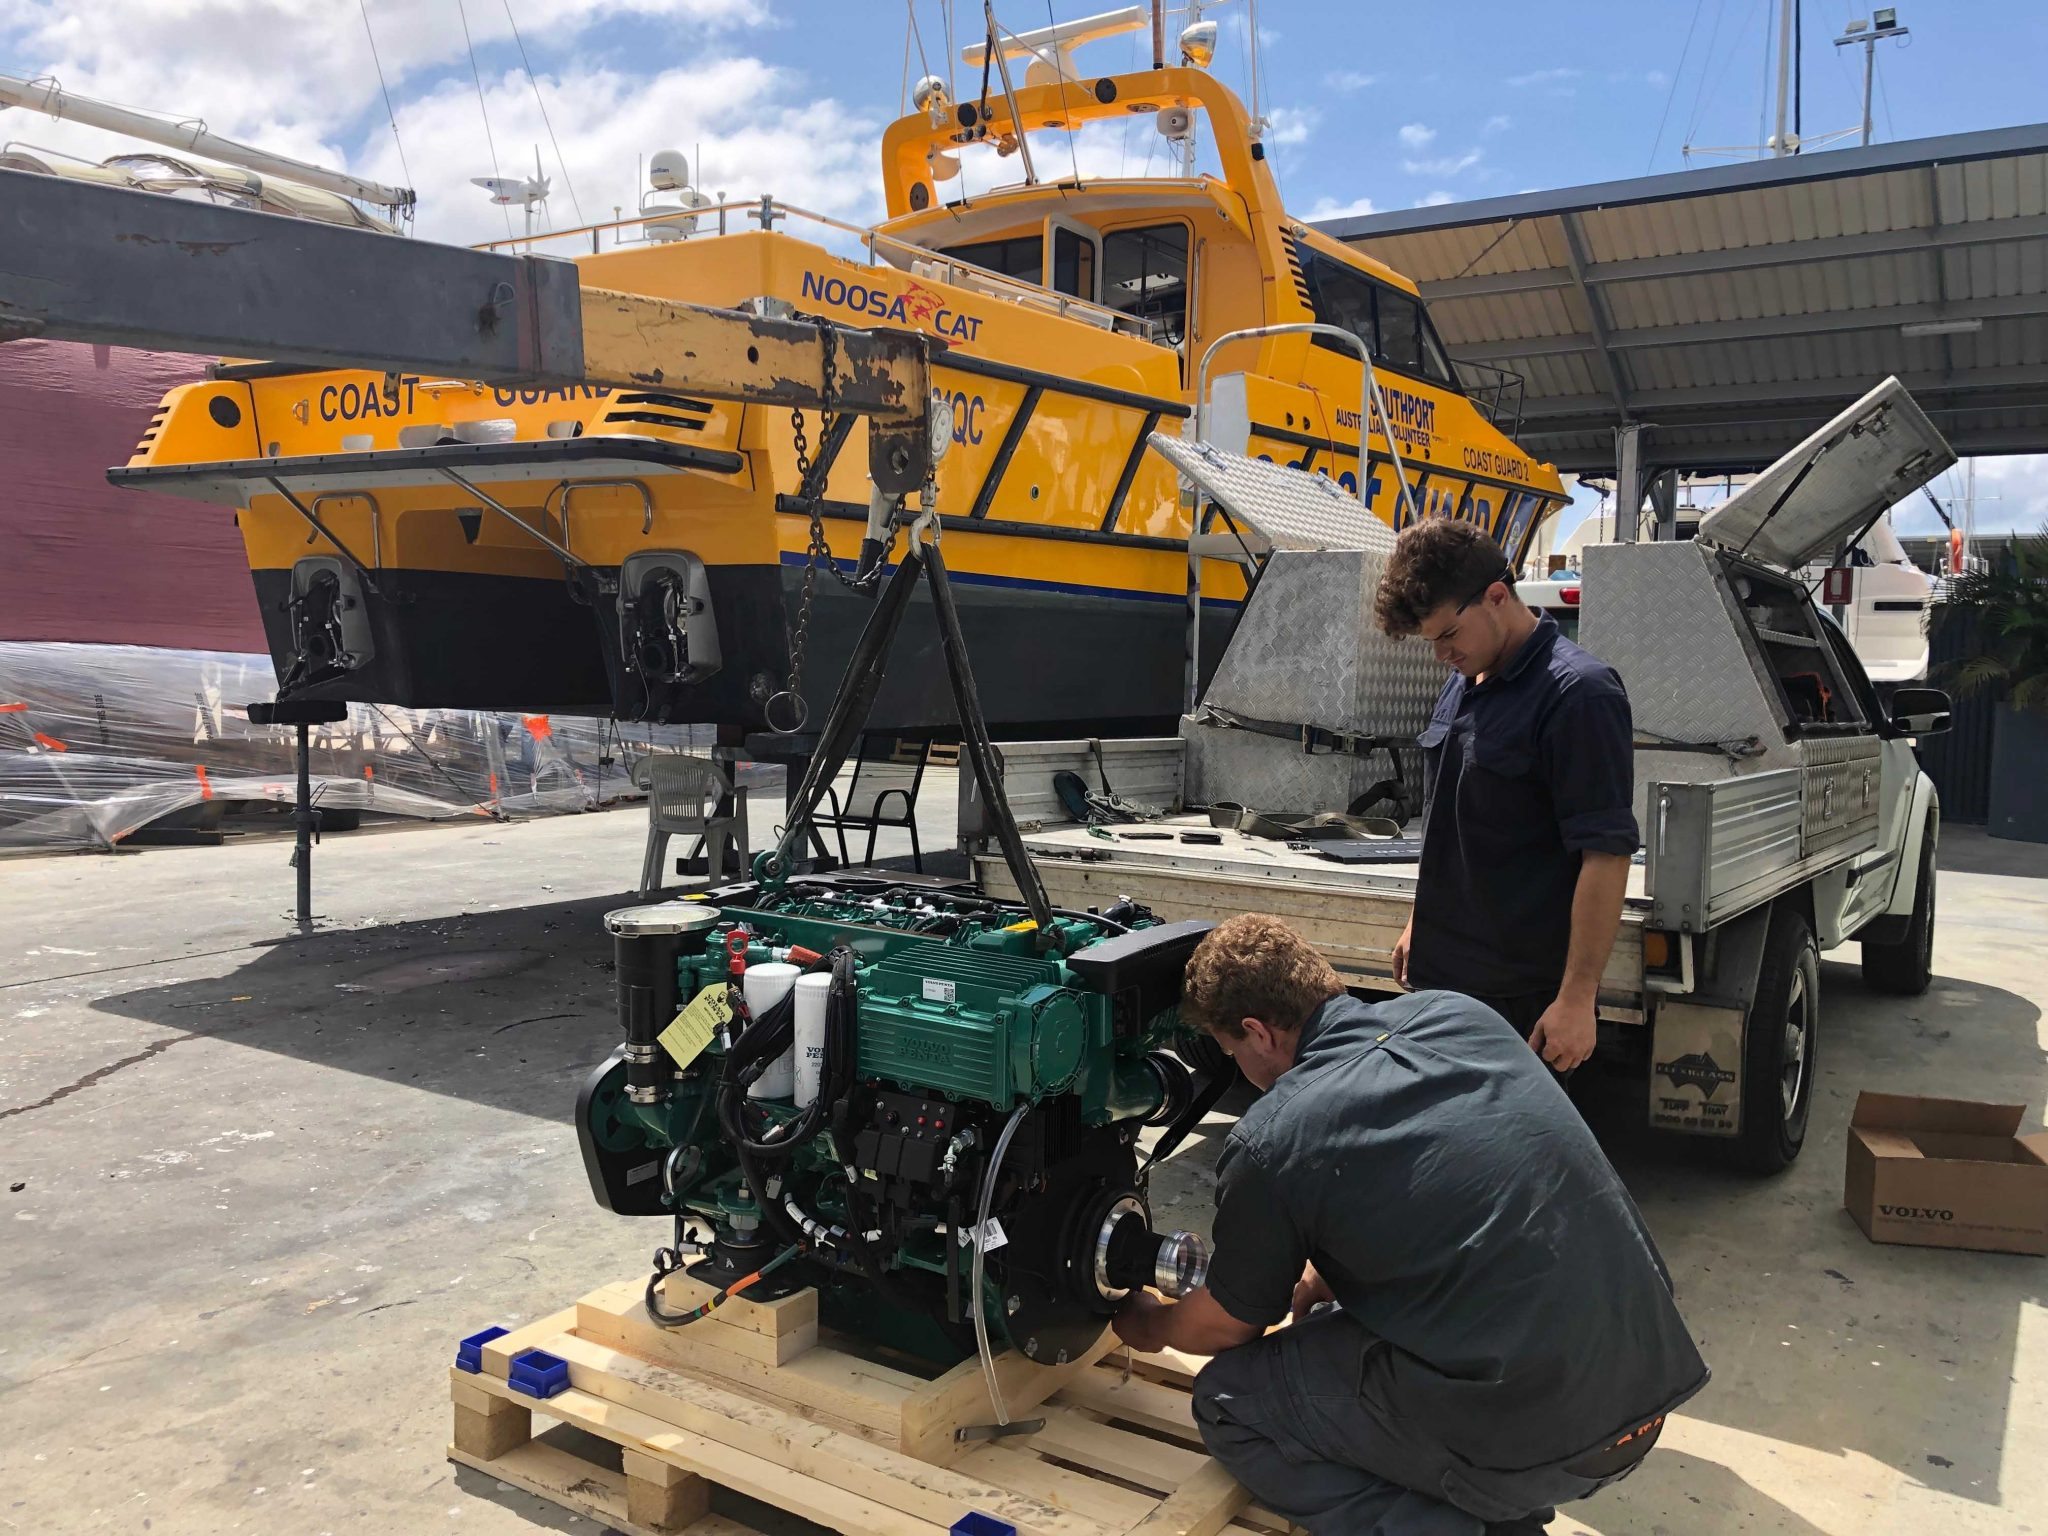 Noosa Cat Engine install, The Boat Works